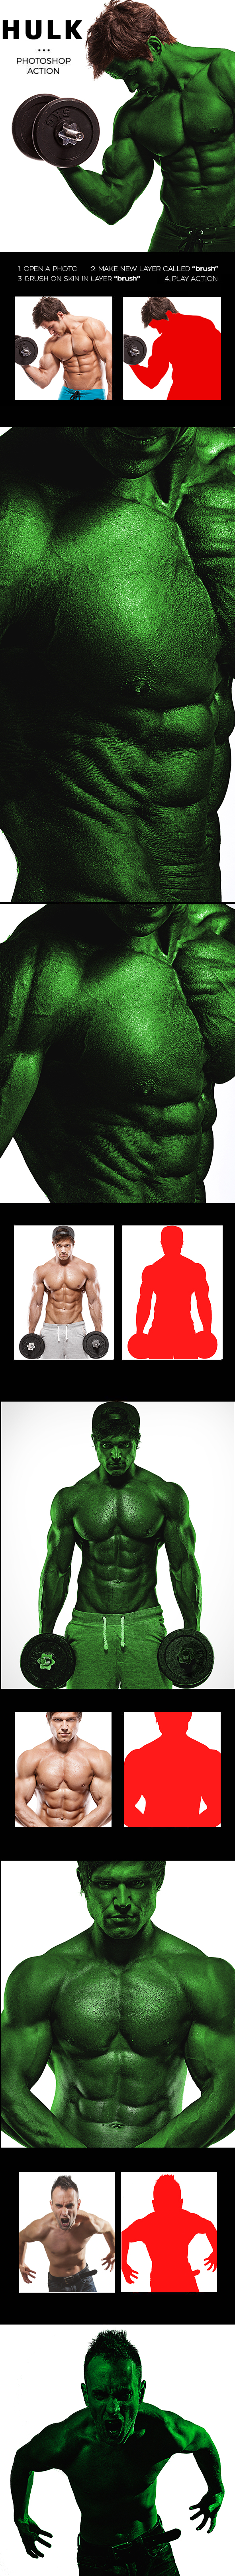 Hulk Photoshop Action - Photo Effects Actions